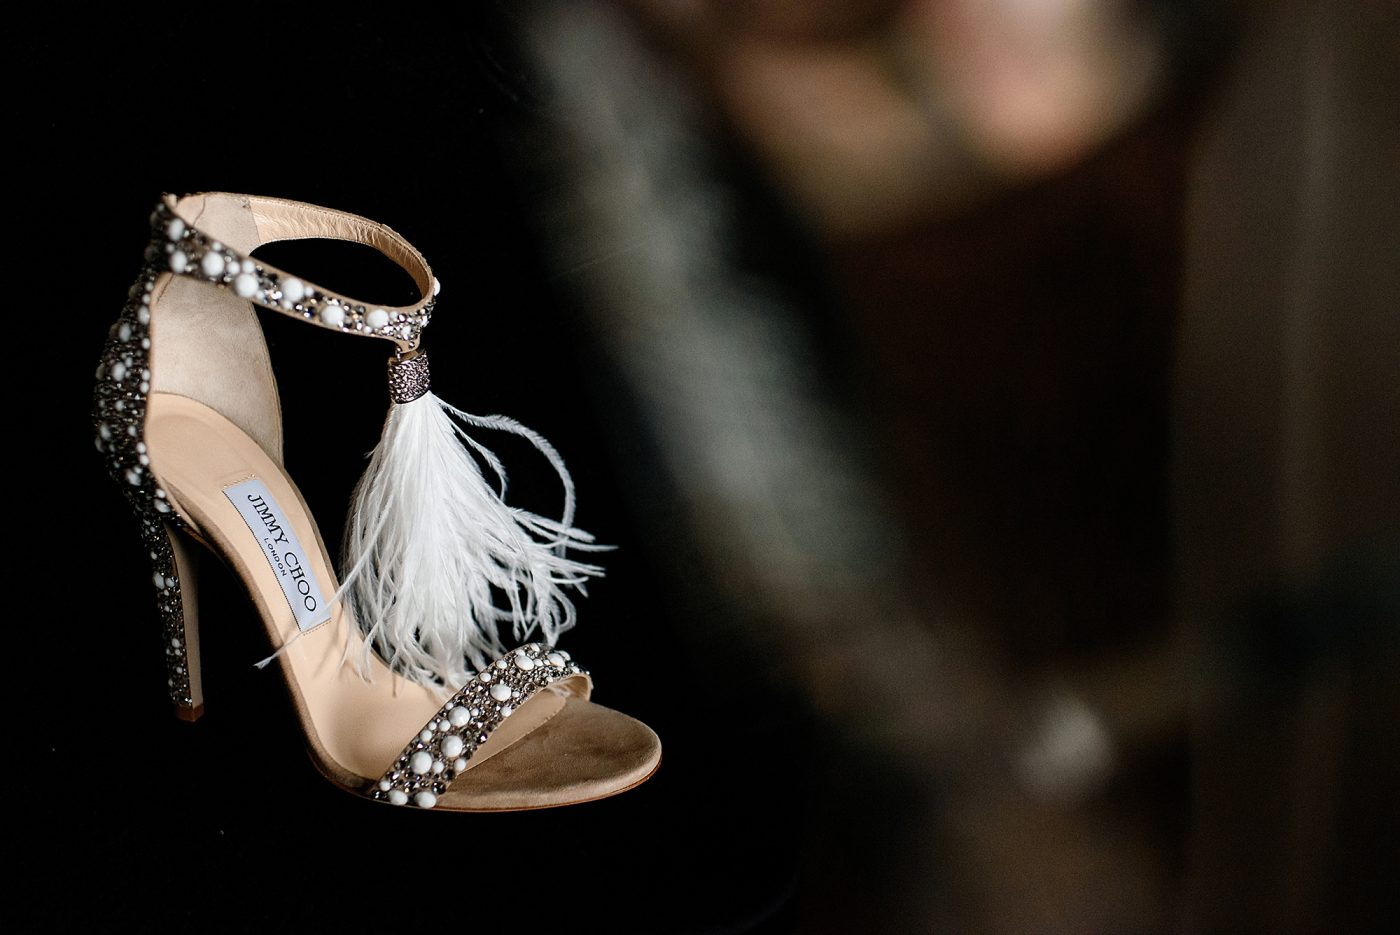 jimmy choo shoes with feathers